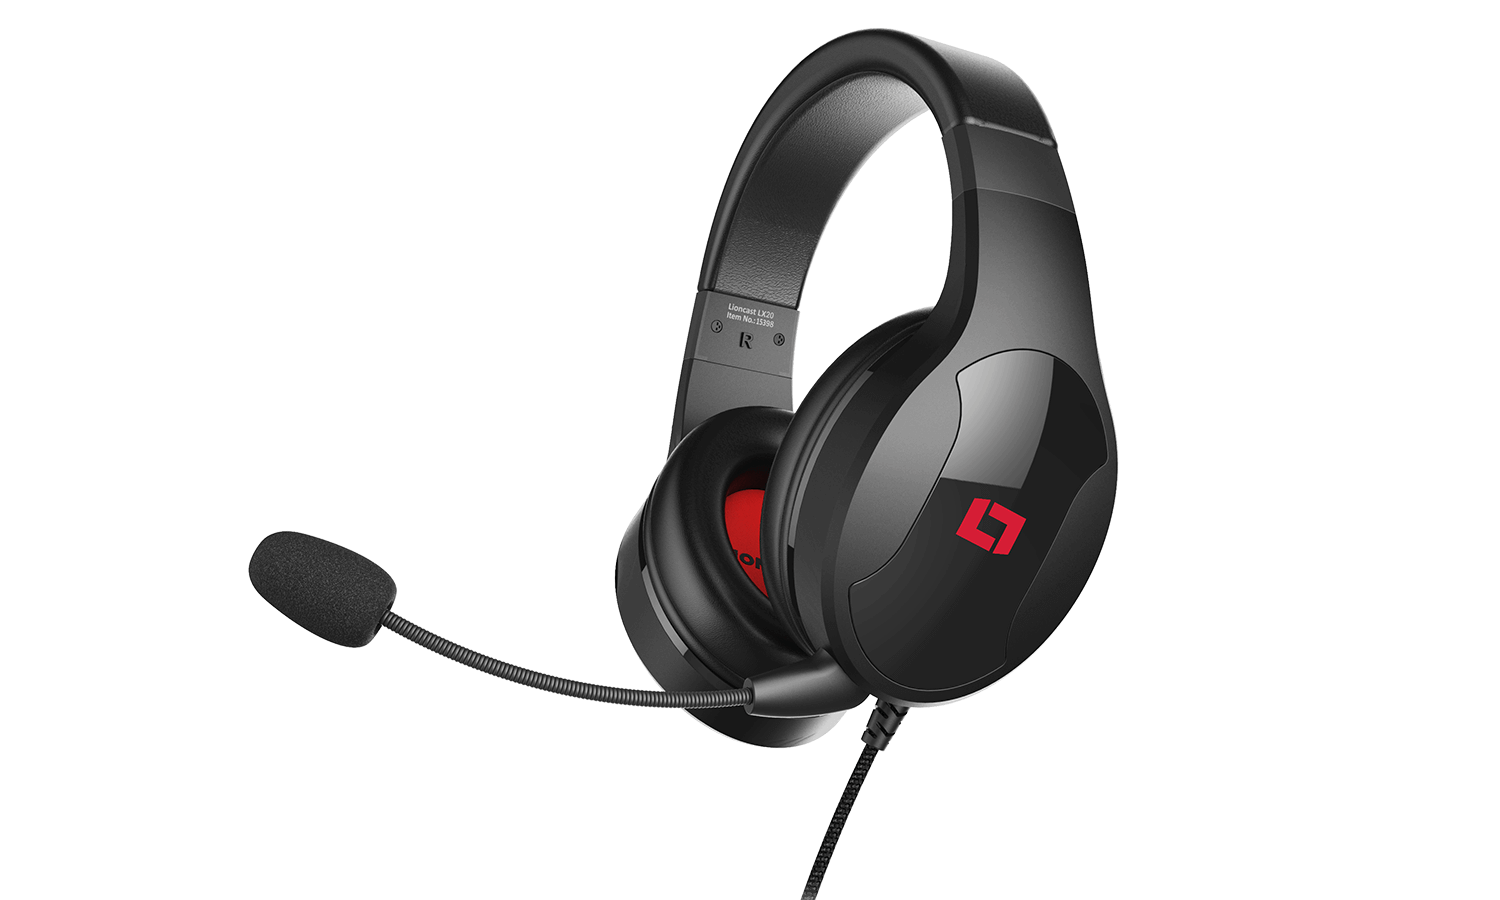 Lioncast LX20 Gaming Headset.